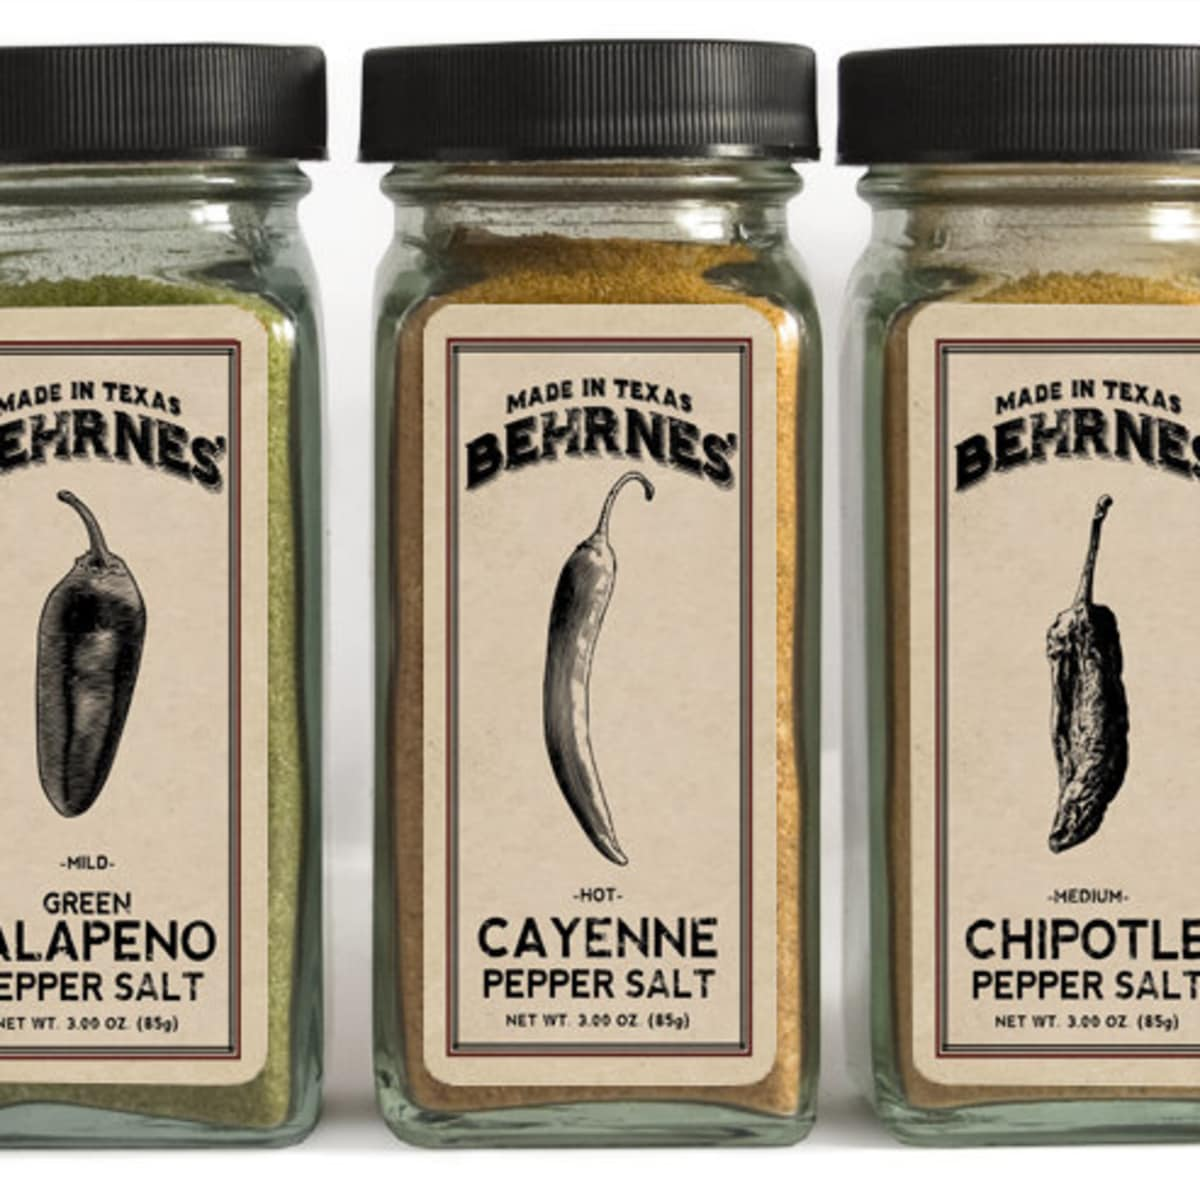 Behrnes' pepper salts